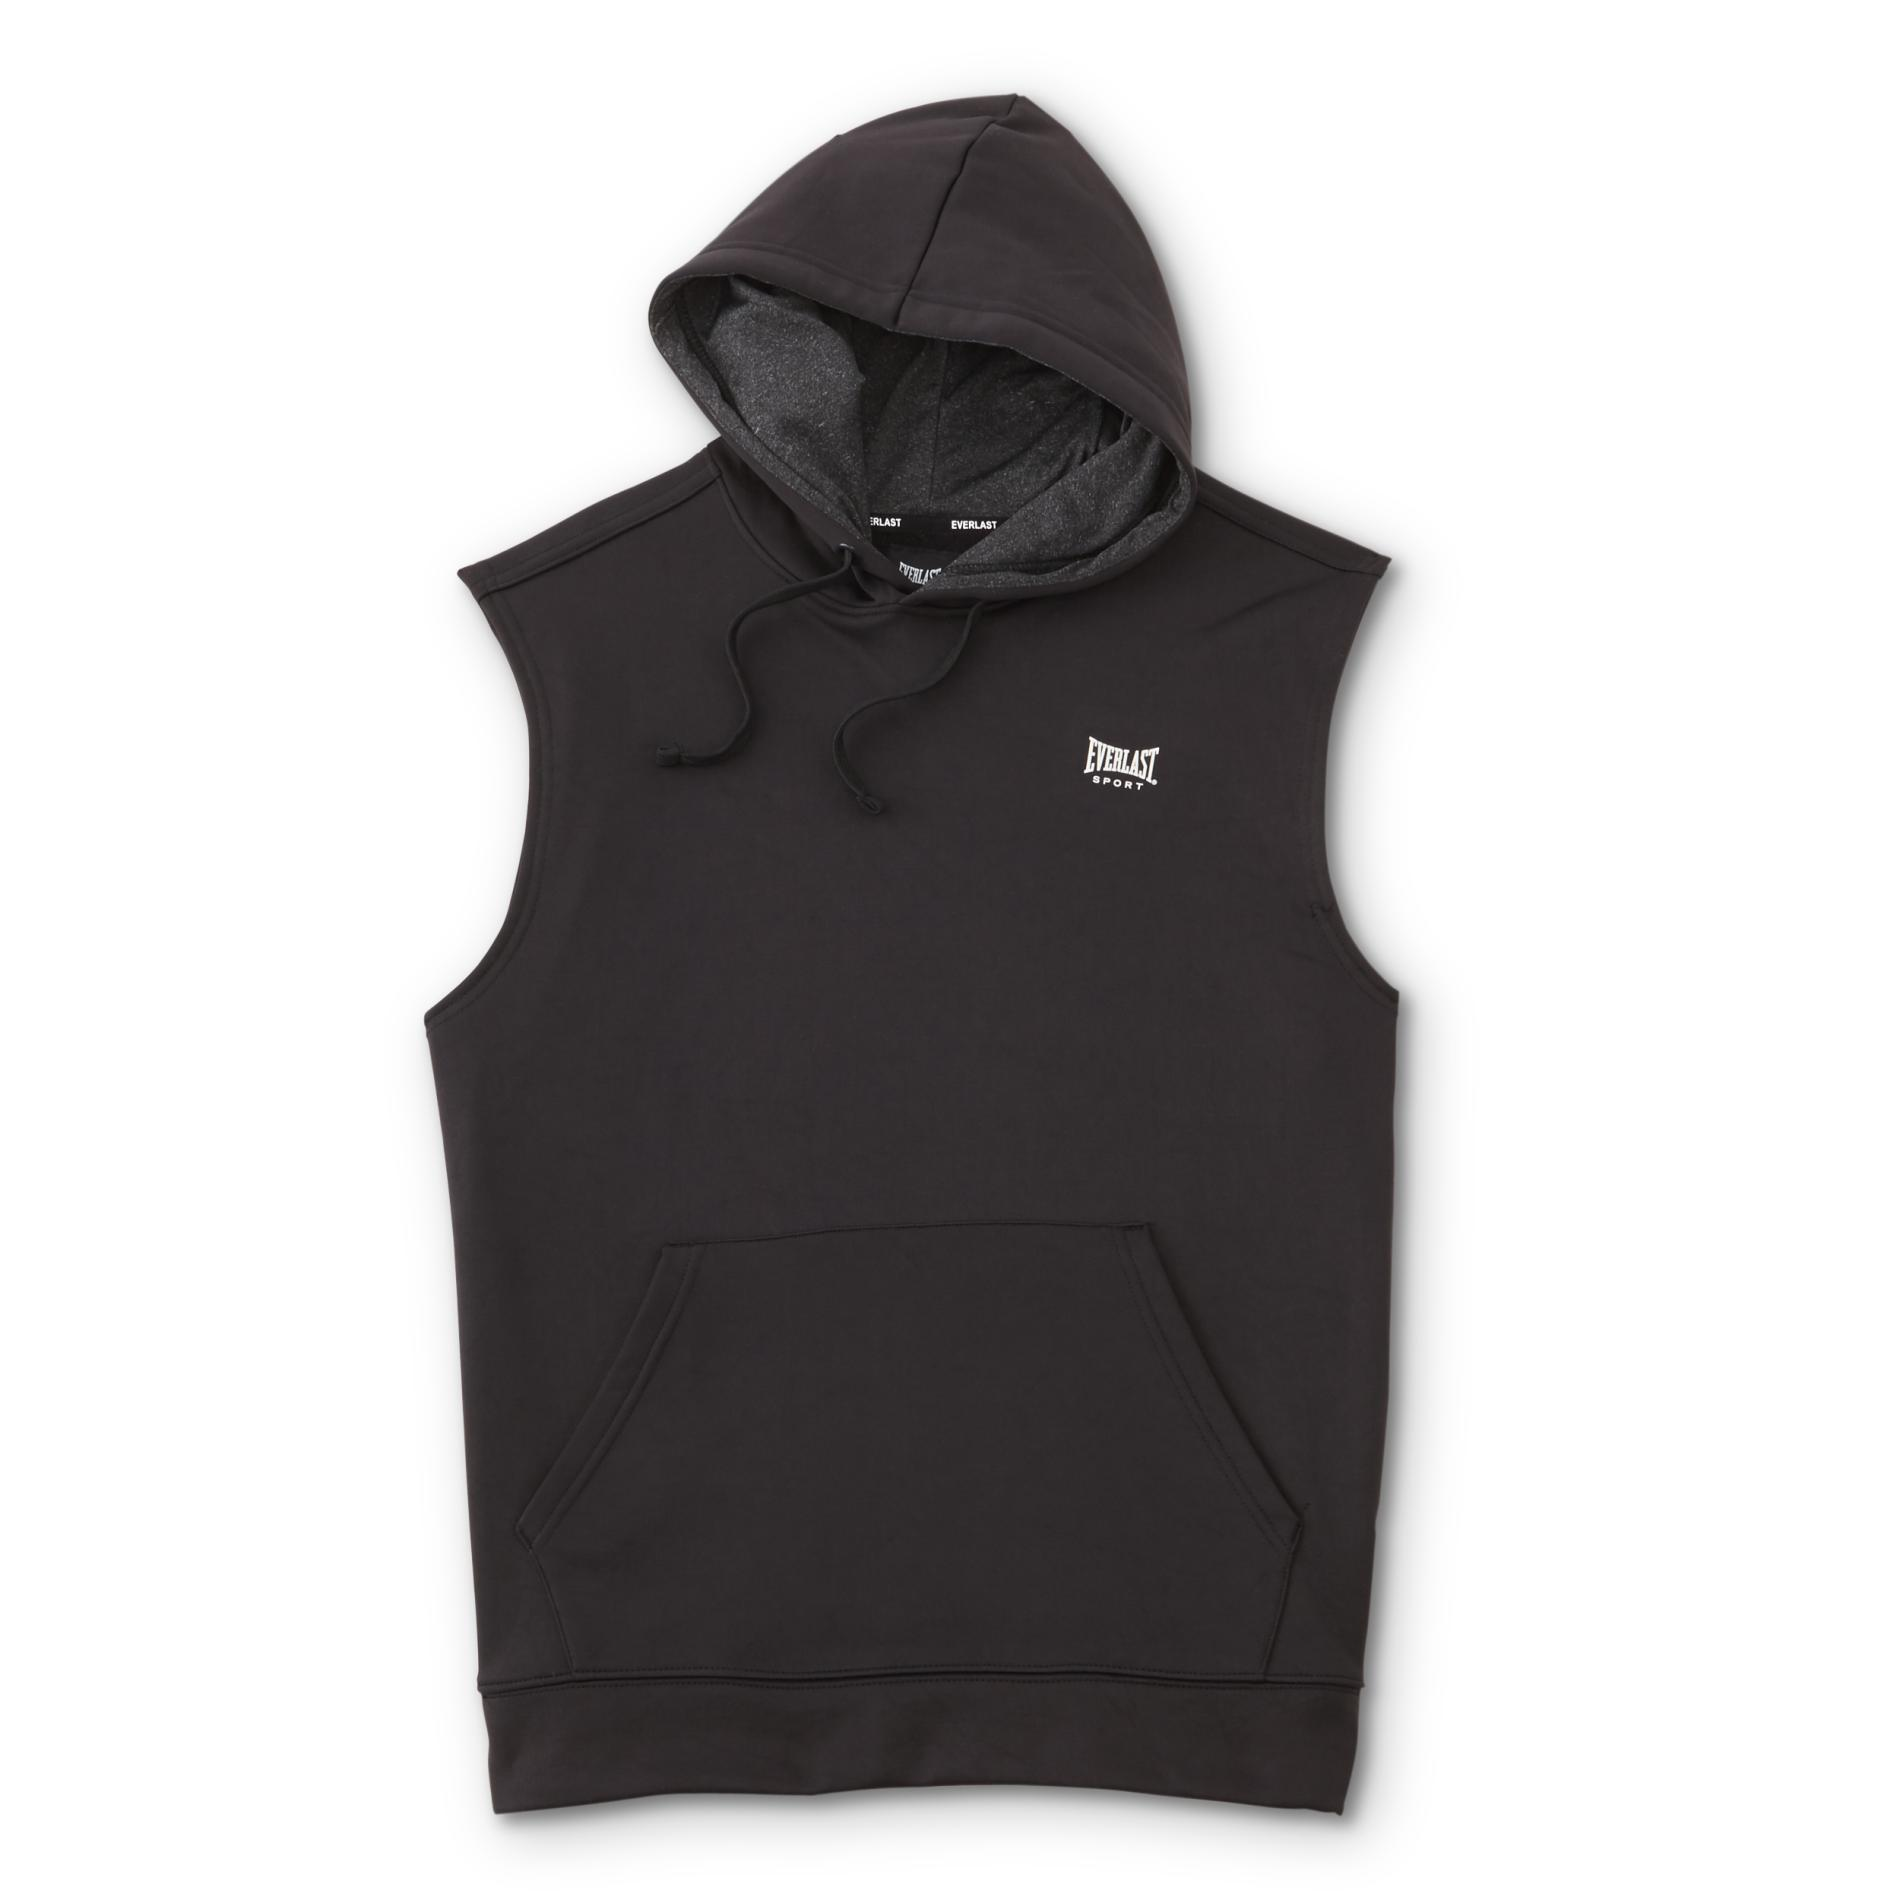 Everlast® Sport Men's Sleeveless Athletic Hoodie PartNumber: A028183356 MfgPartNumber: MF8EK36510YM